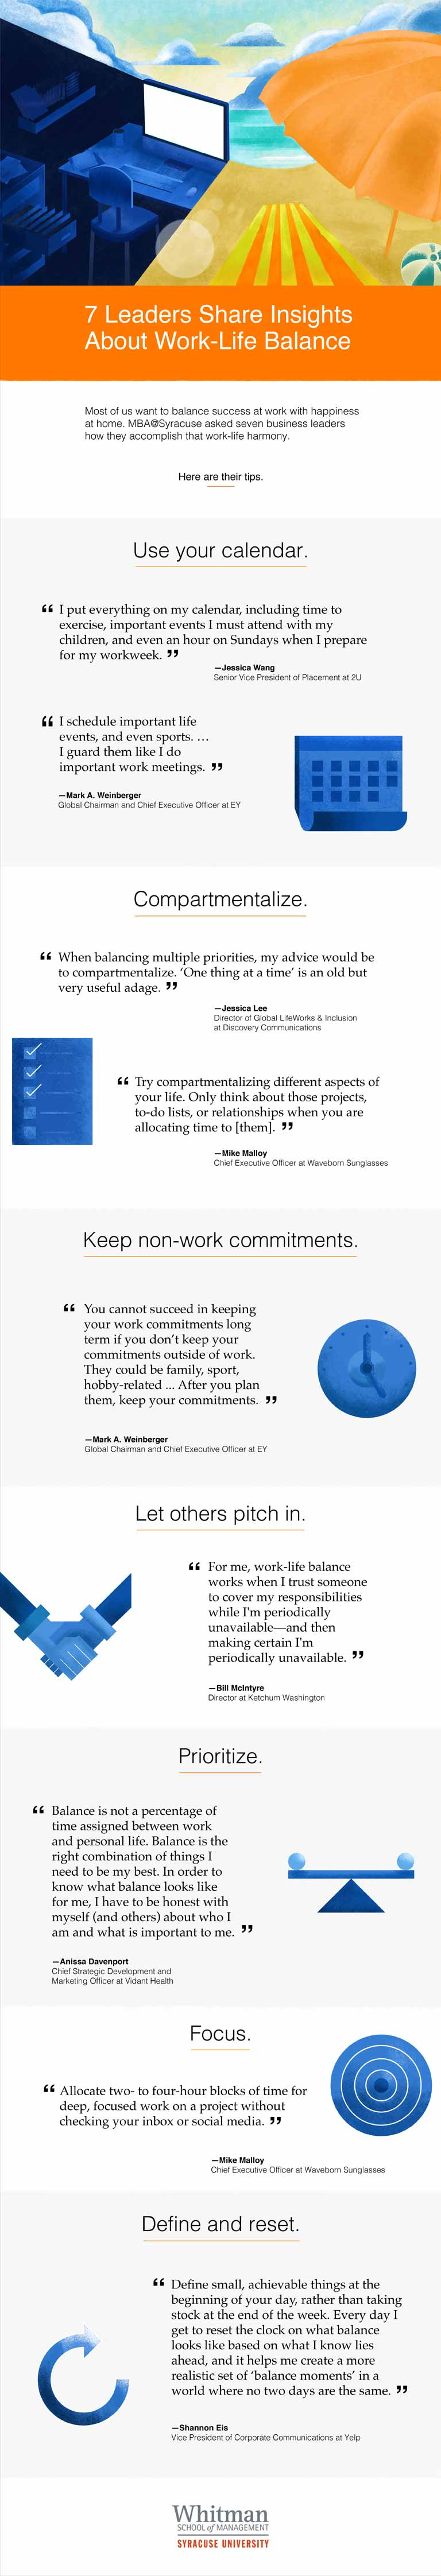 Infographic sharing insights about work-life balance that are also repeated below.